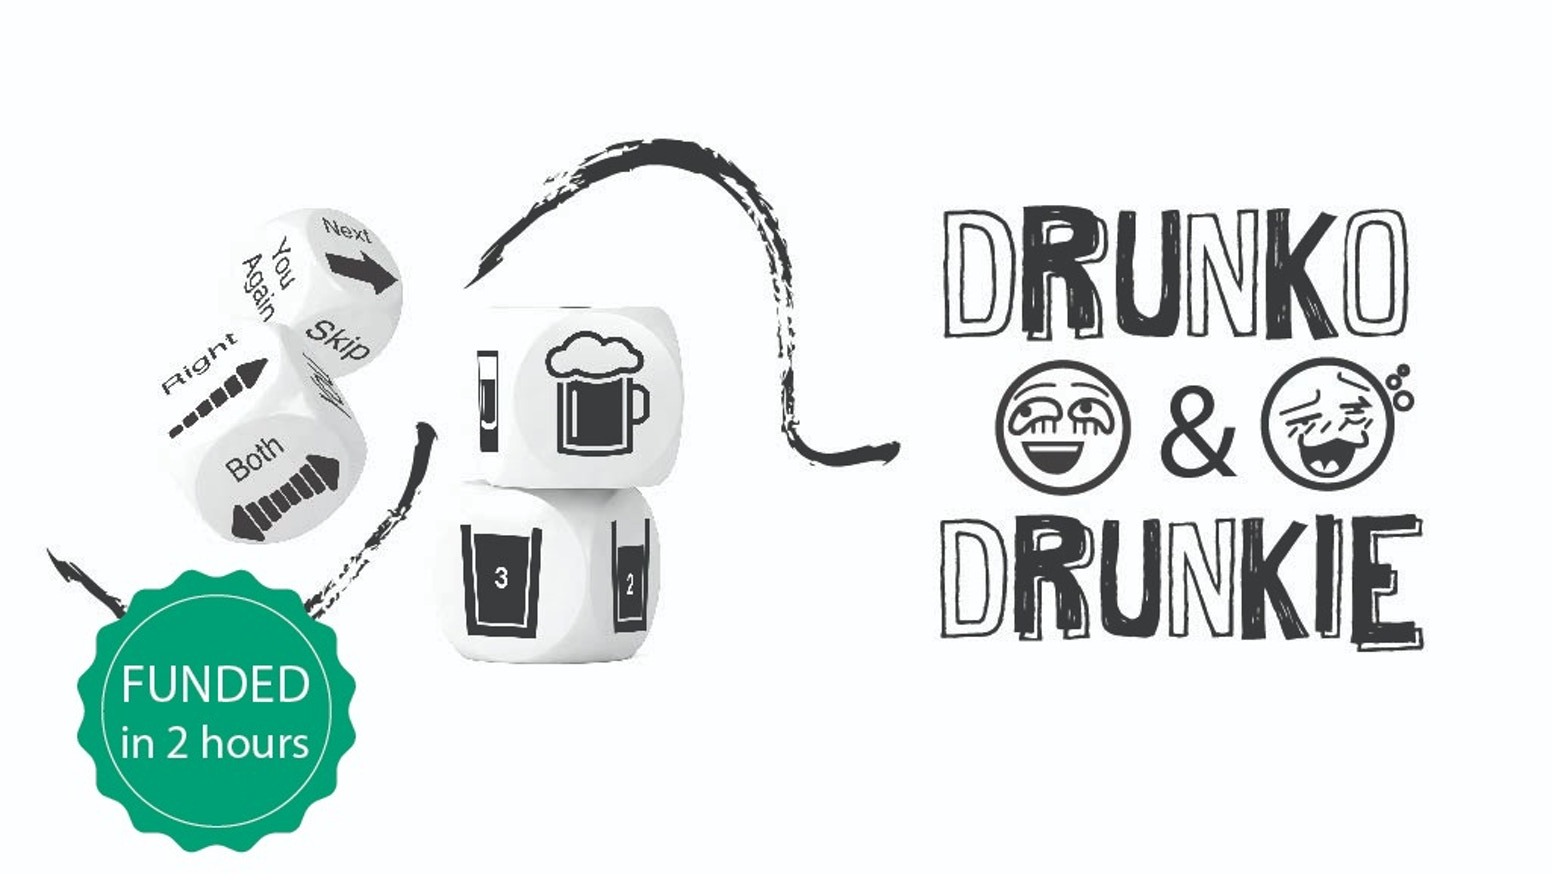 Drunko & Drunkie - 11 games with 4 dice only